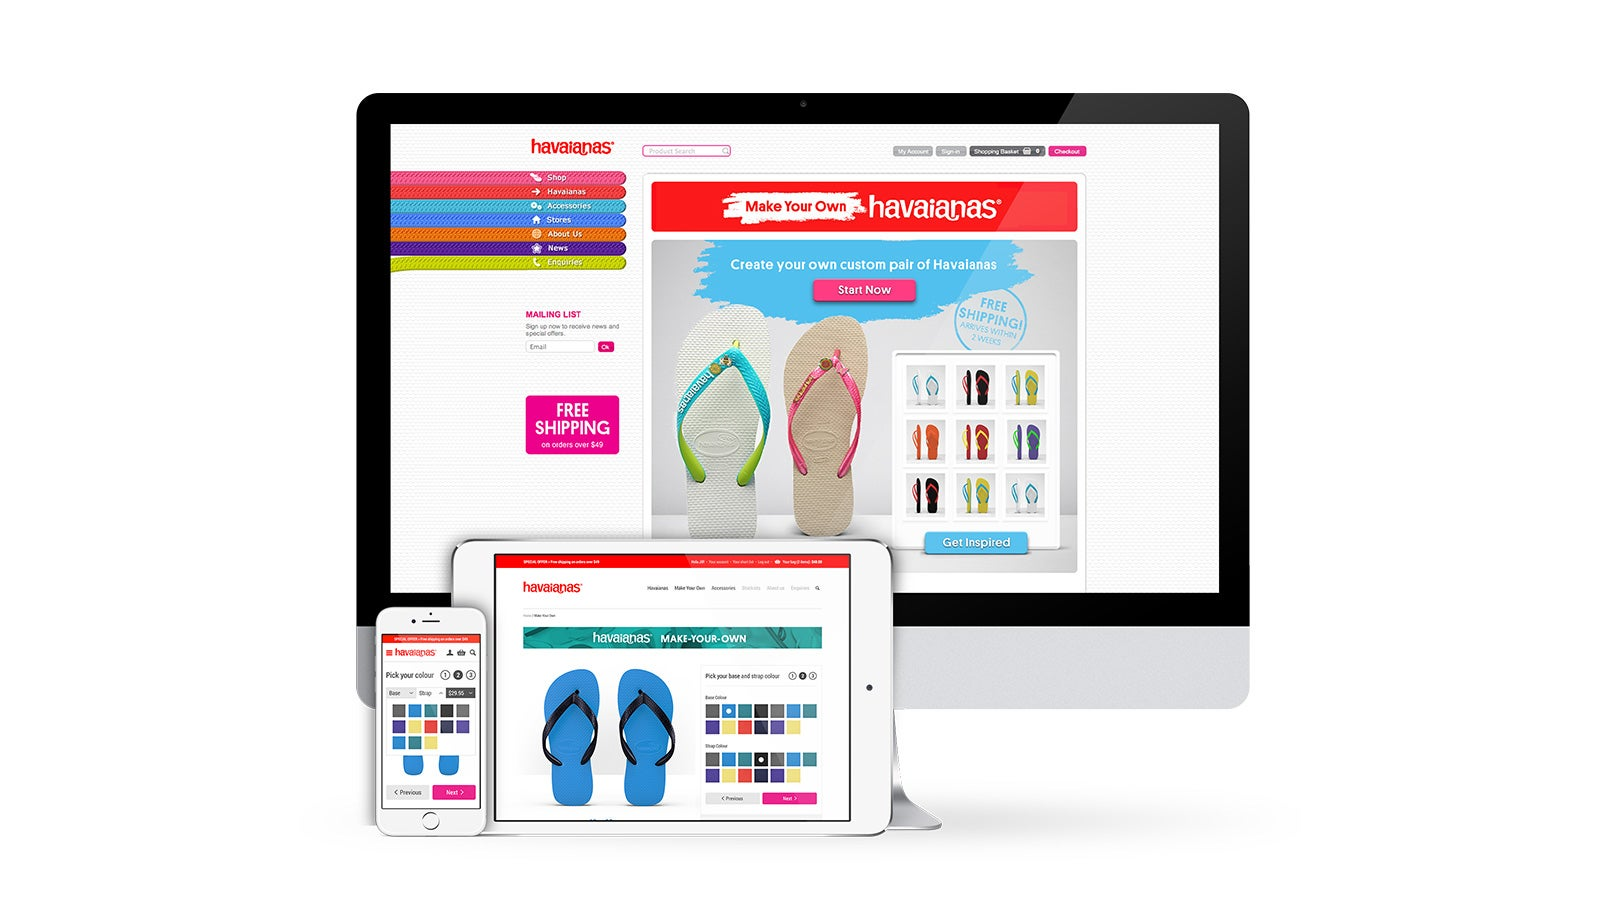 Havaianas | Make Your Own Havianas customisation tool on desktop, tablet and mobile | Devotion